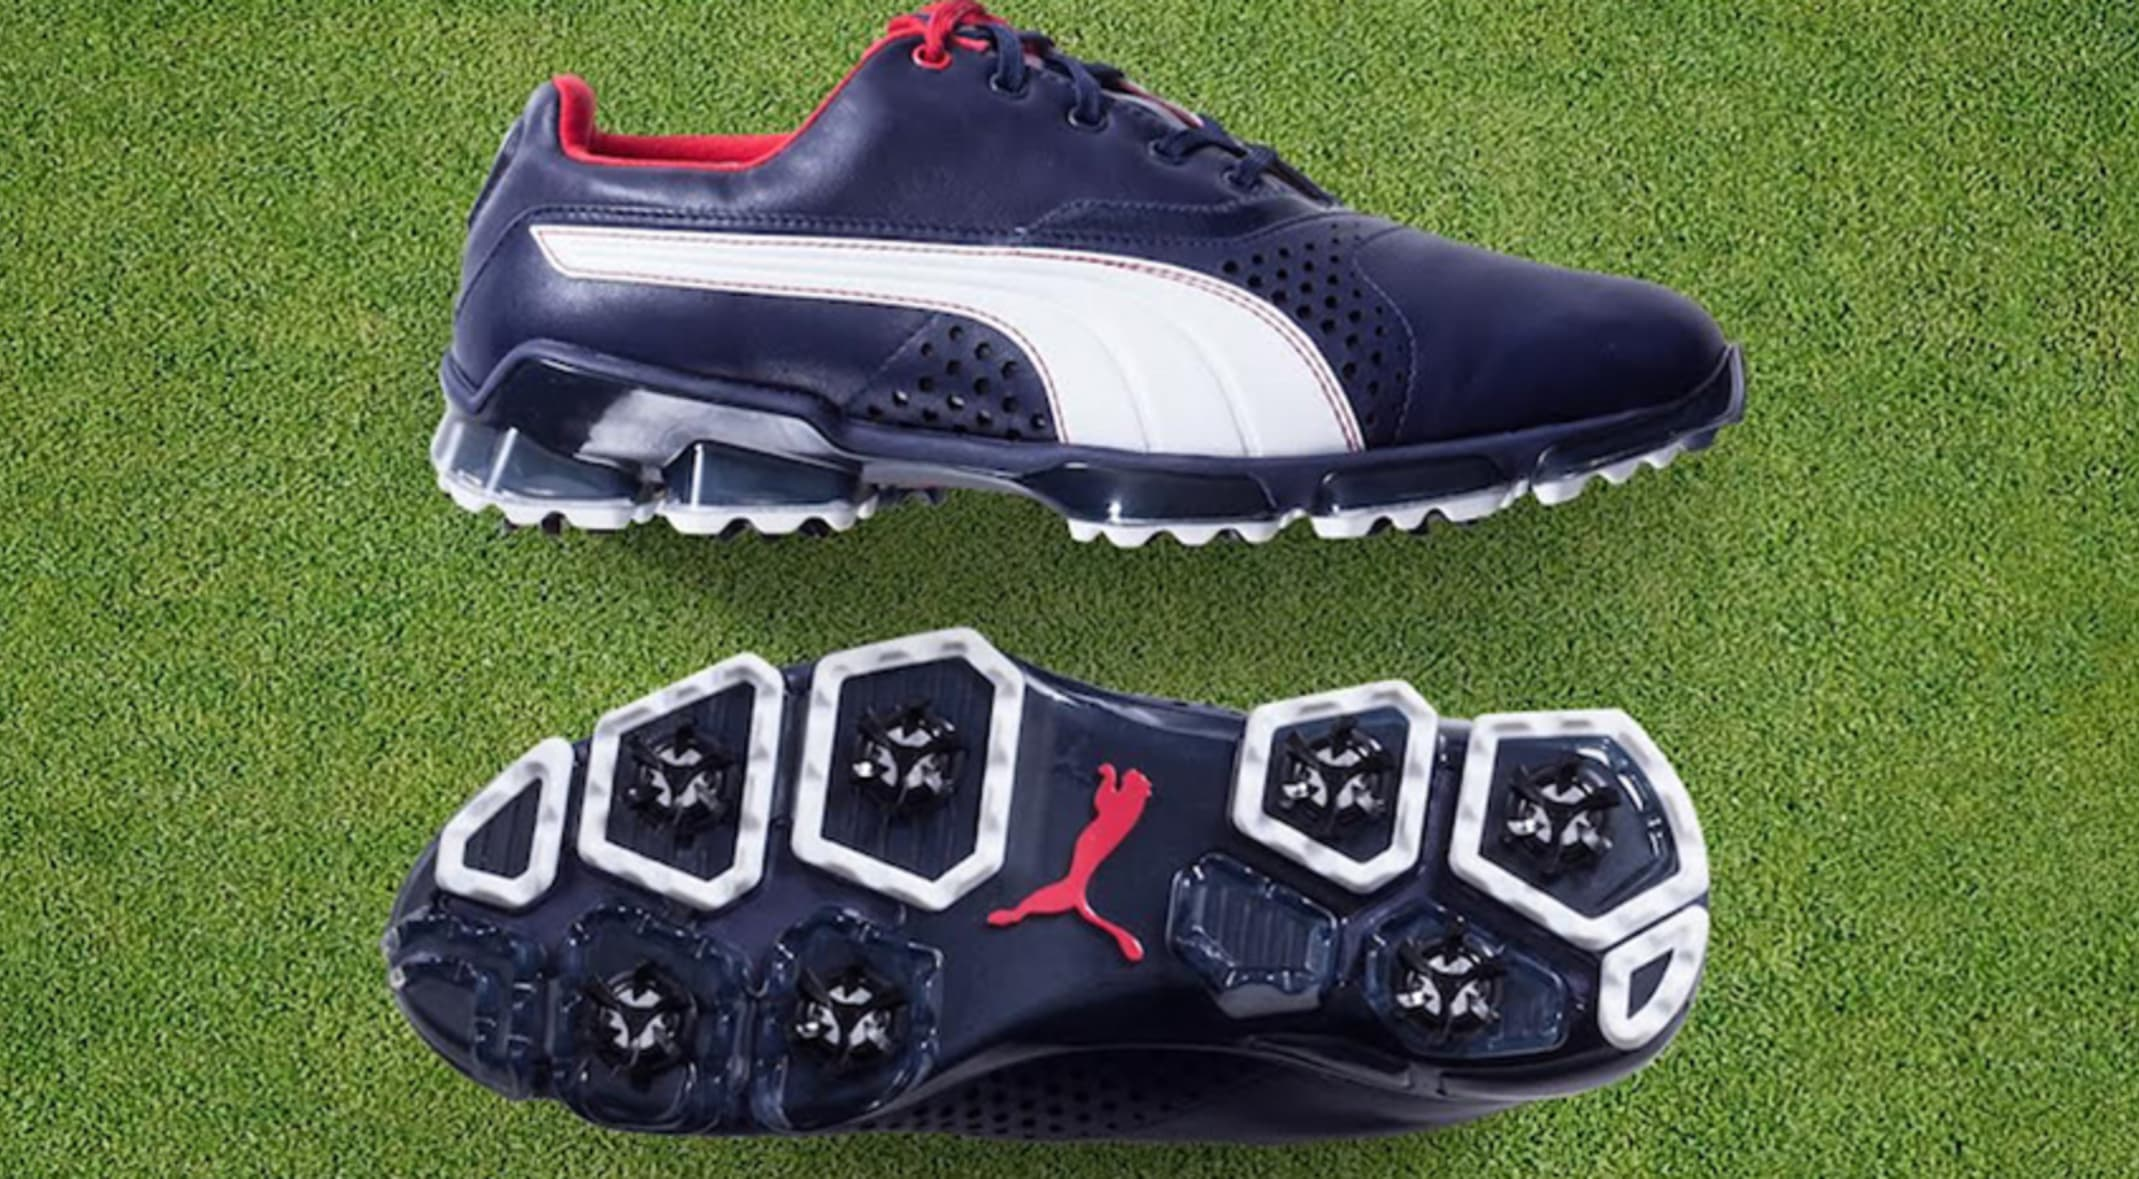 wear special edition Puma shoes